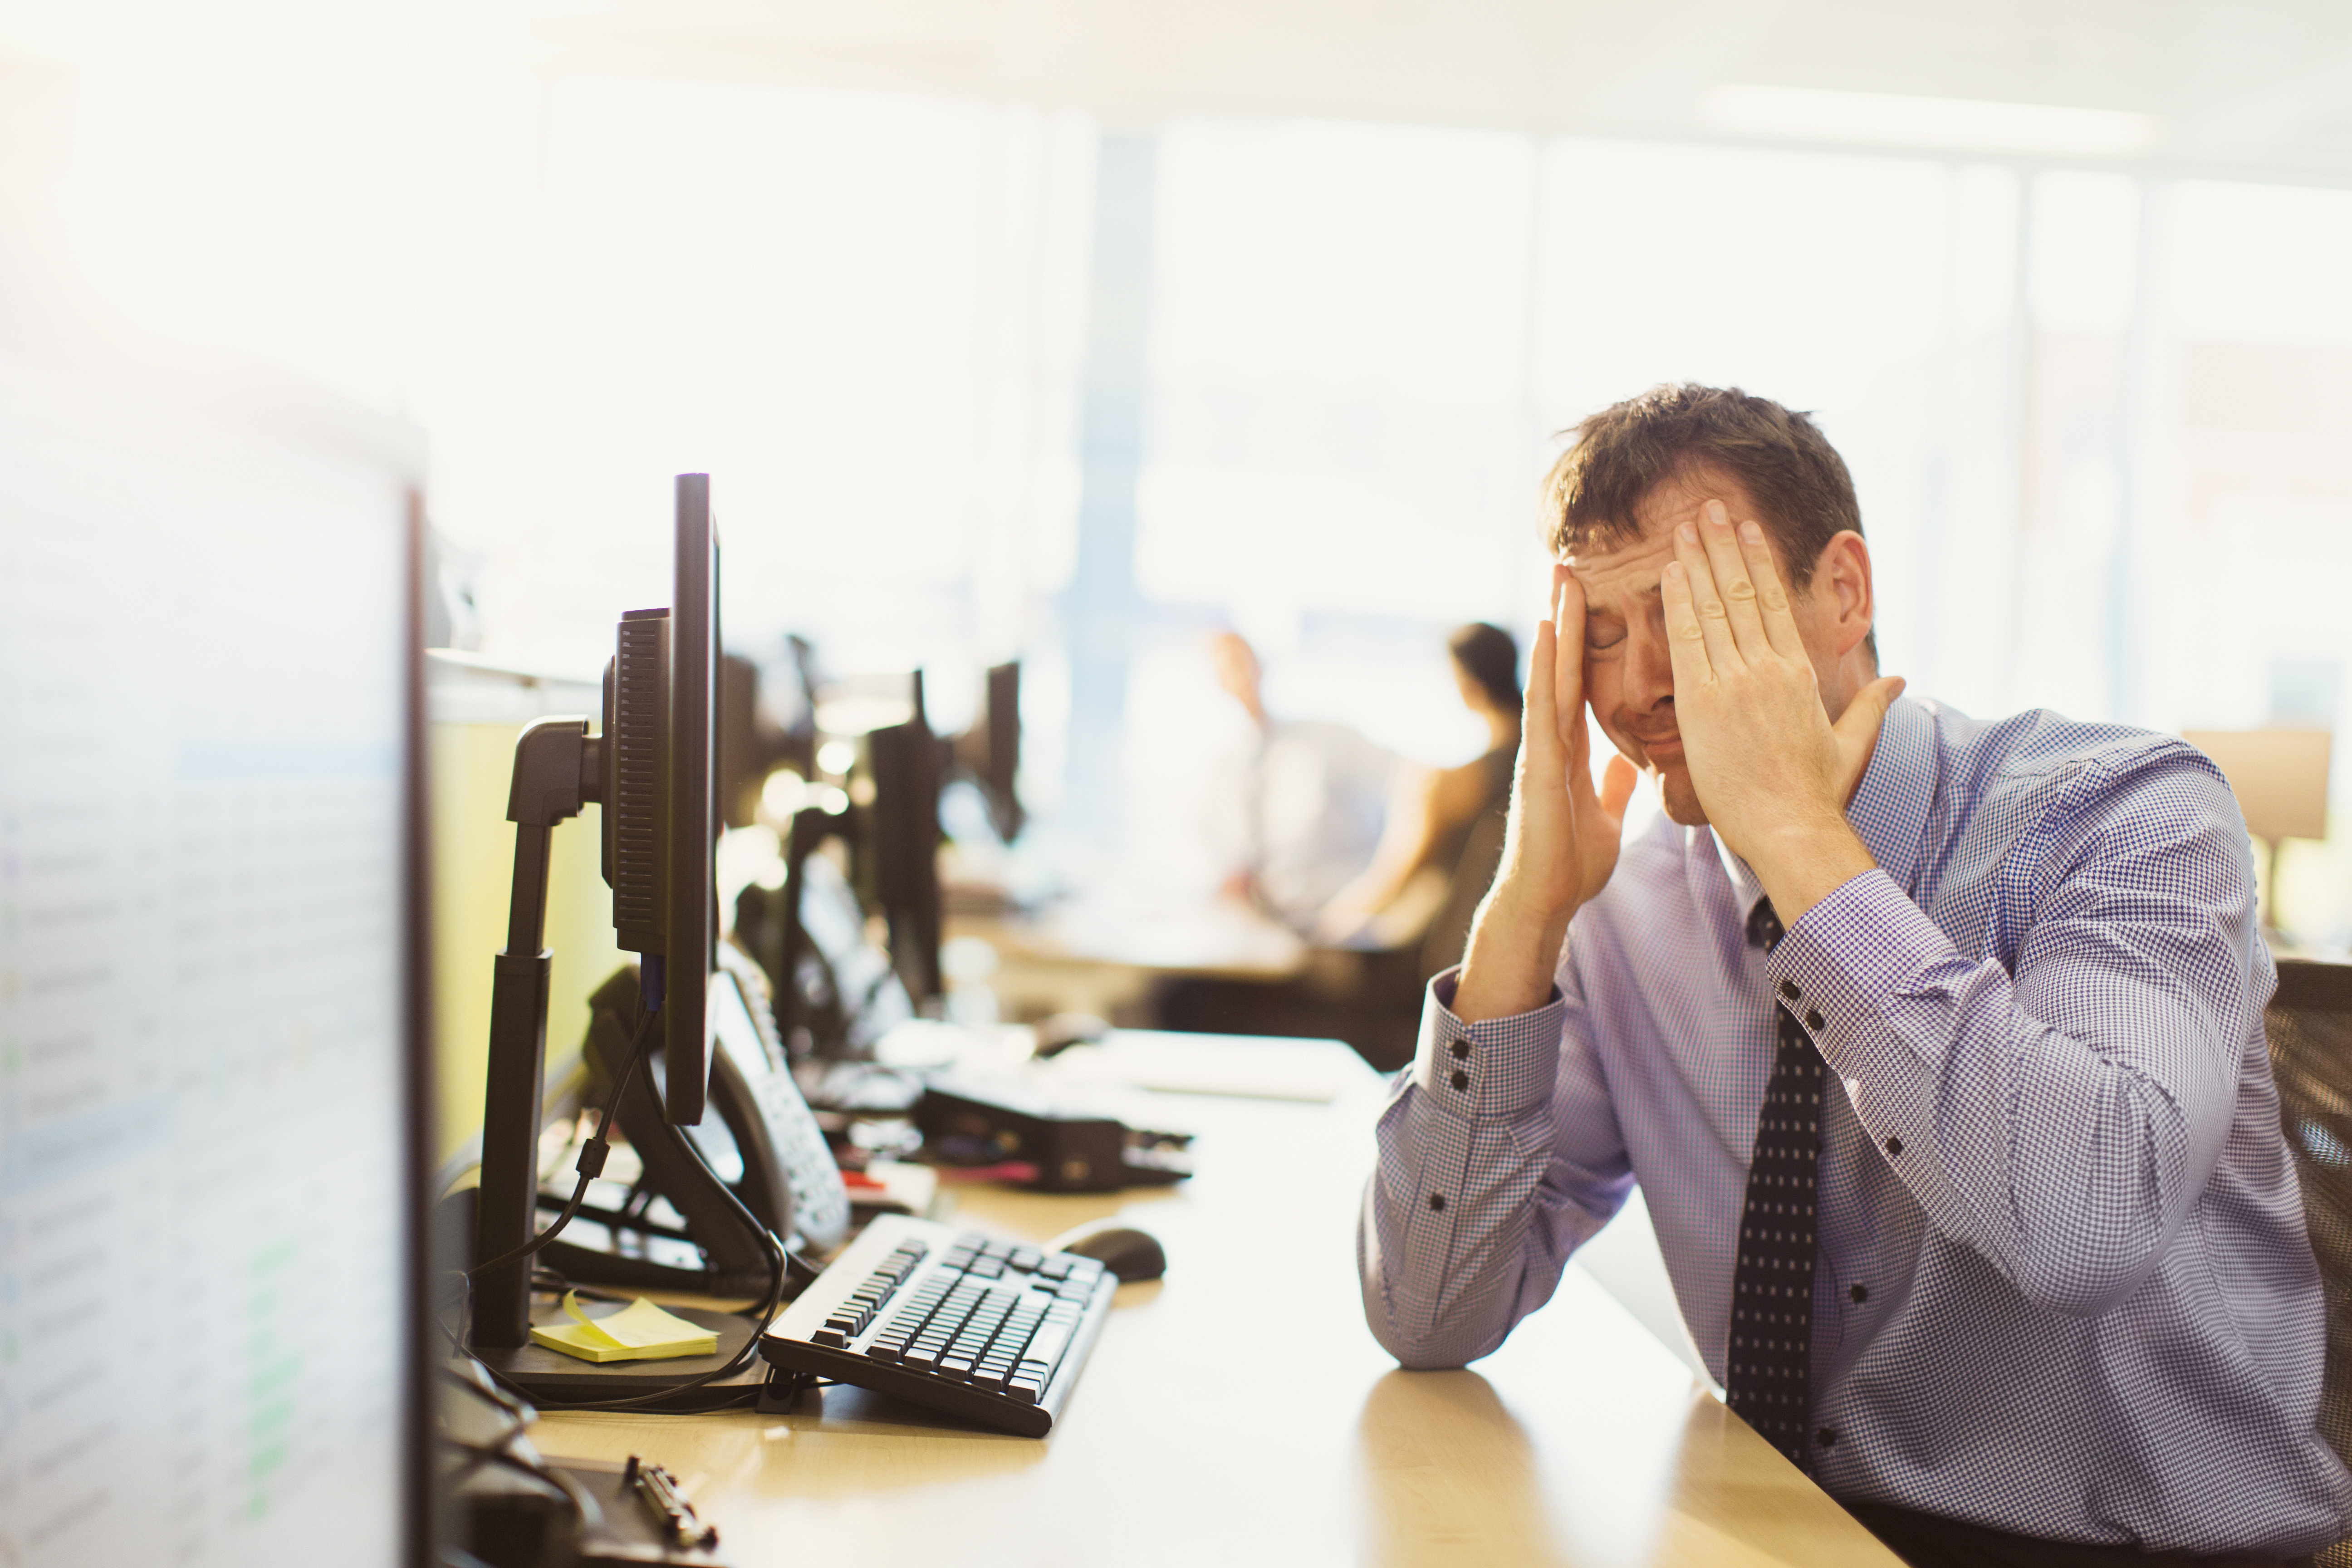 Stressed businessman with head in hands at office desk